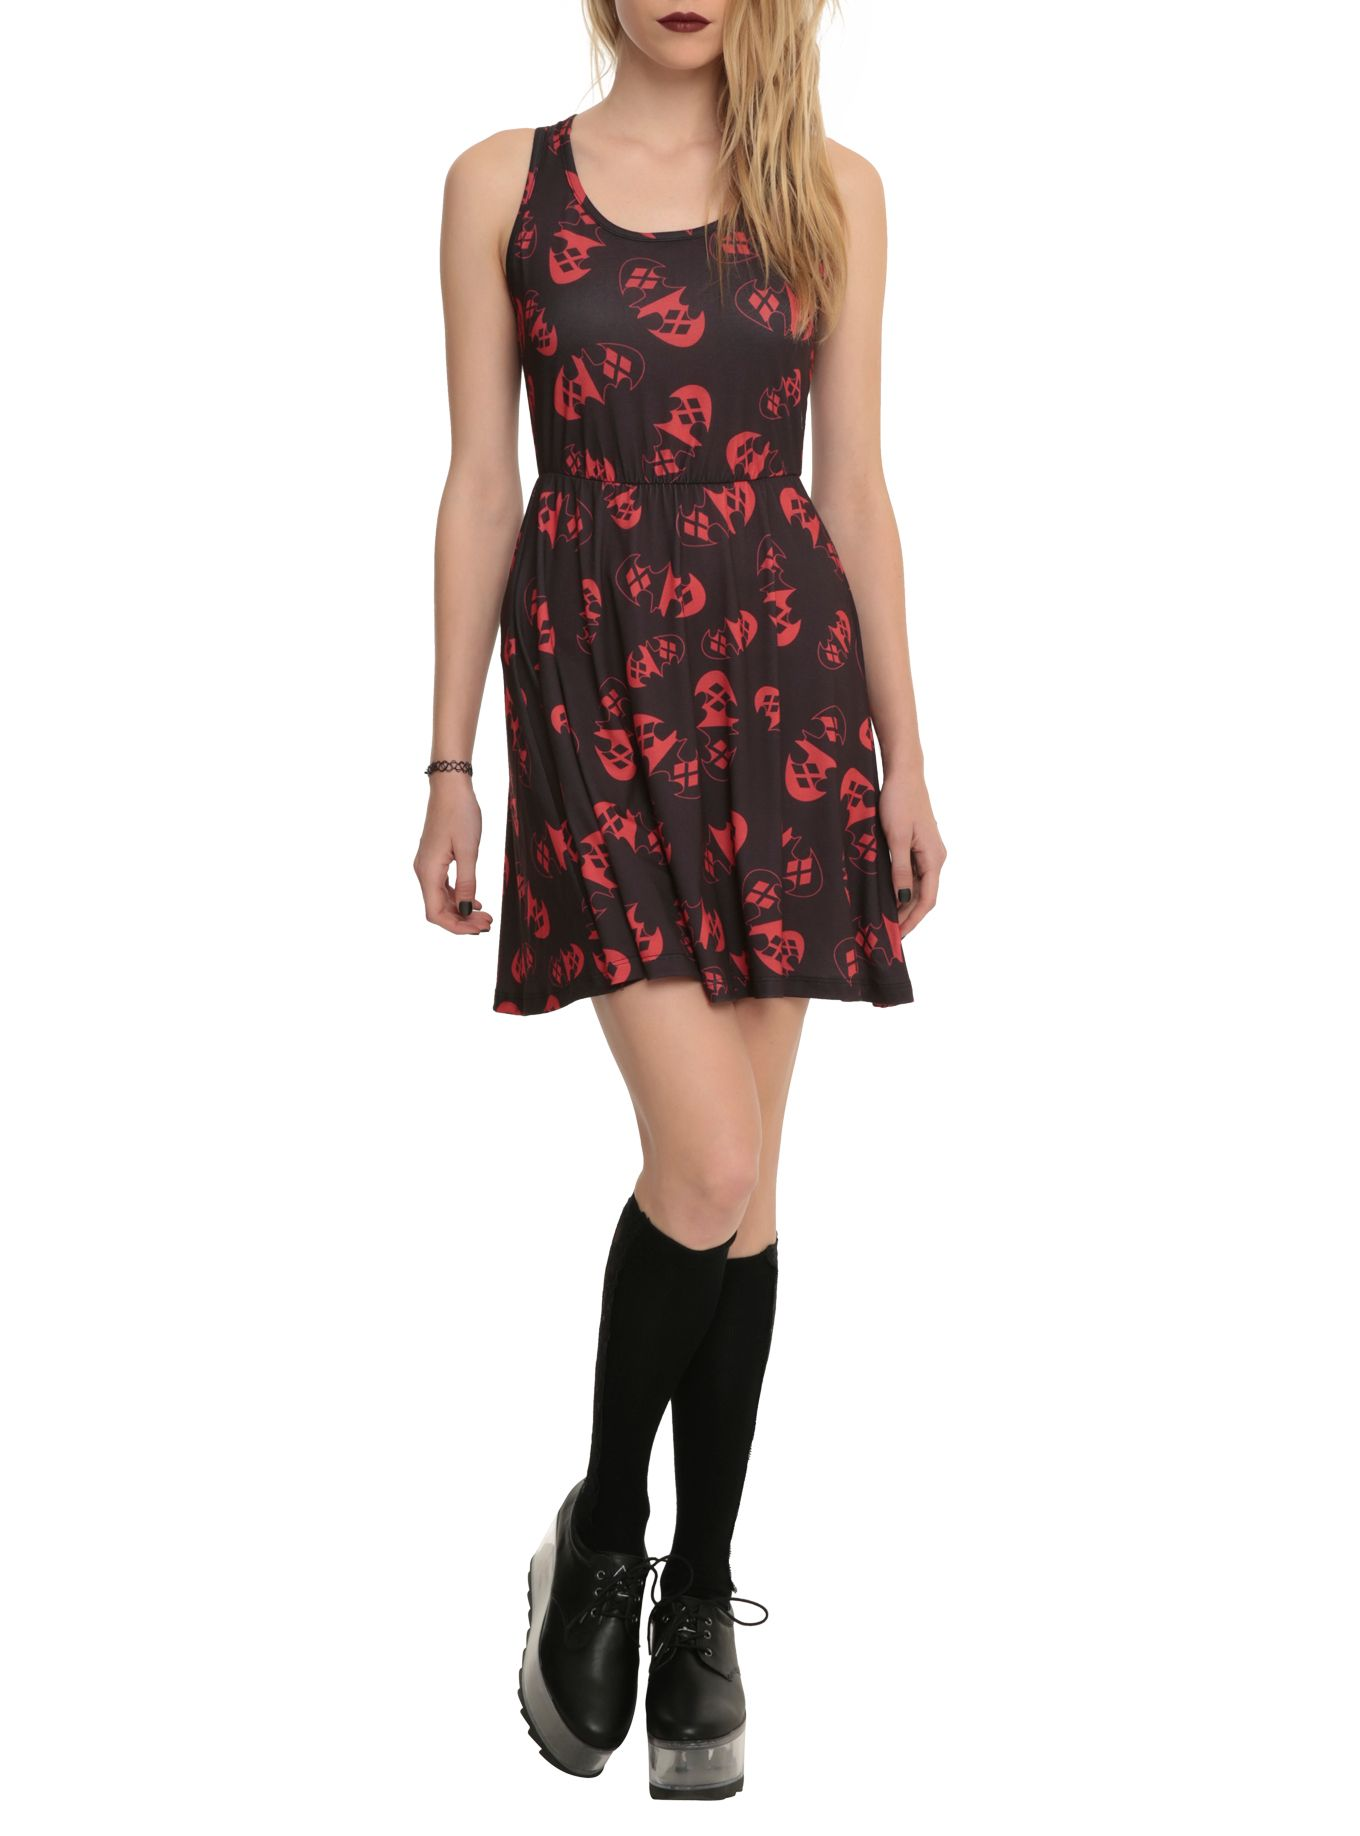 Falling hard for this harley quinn dress want want want please